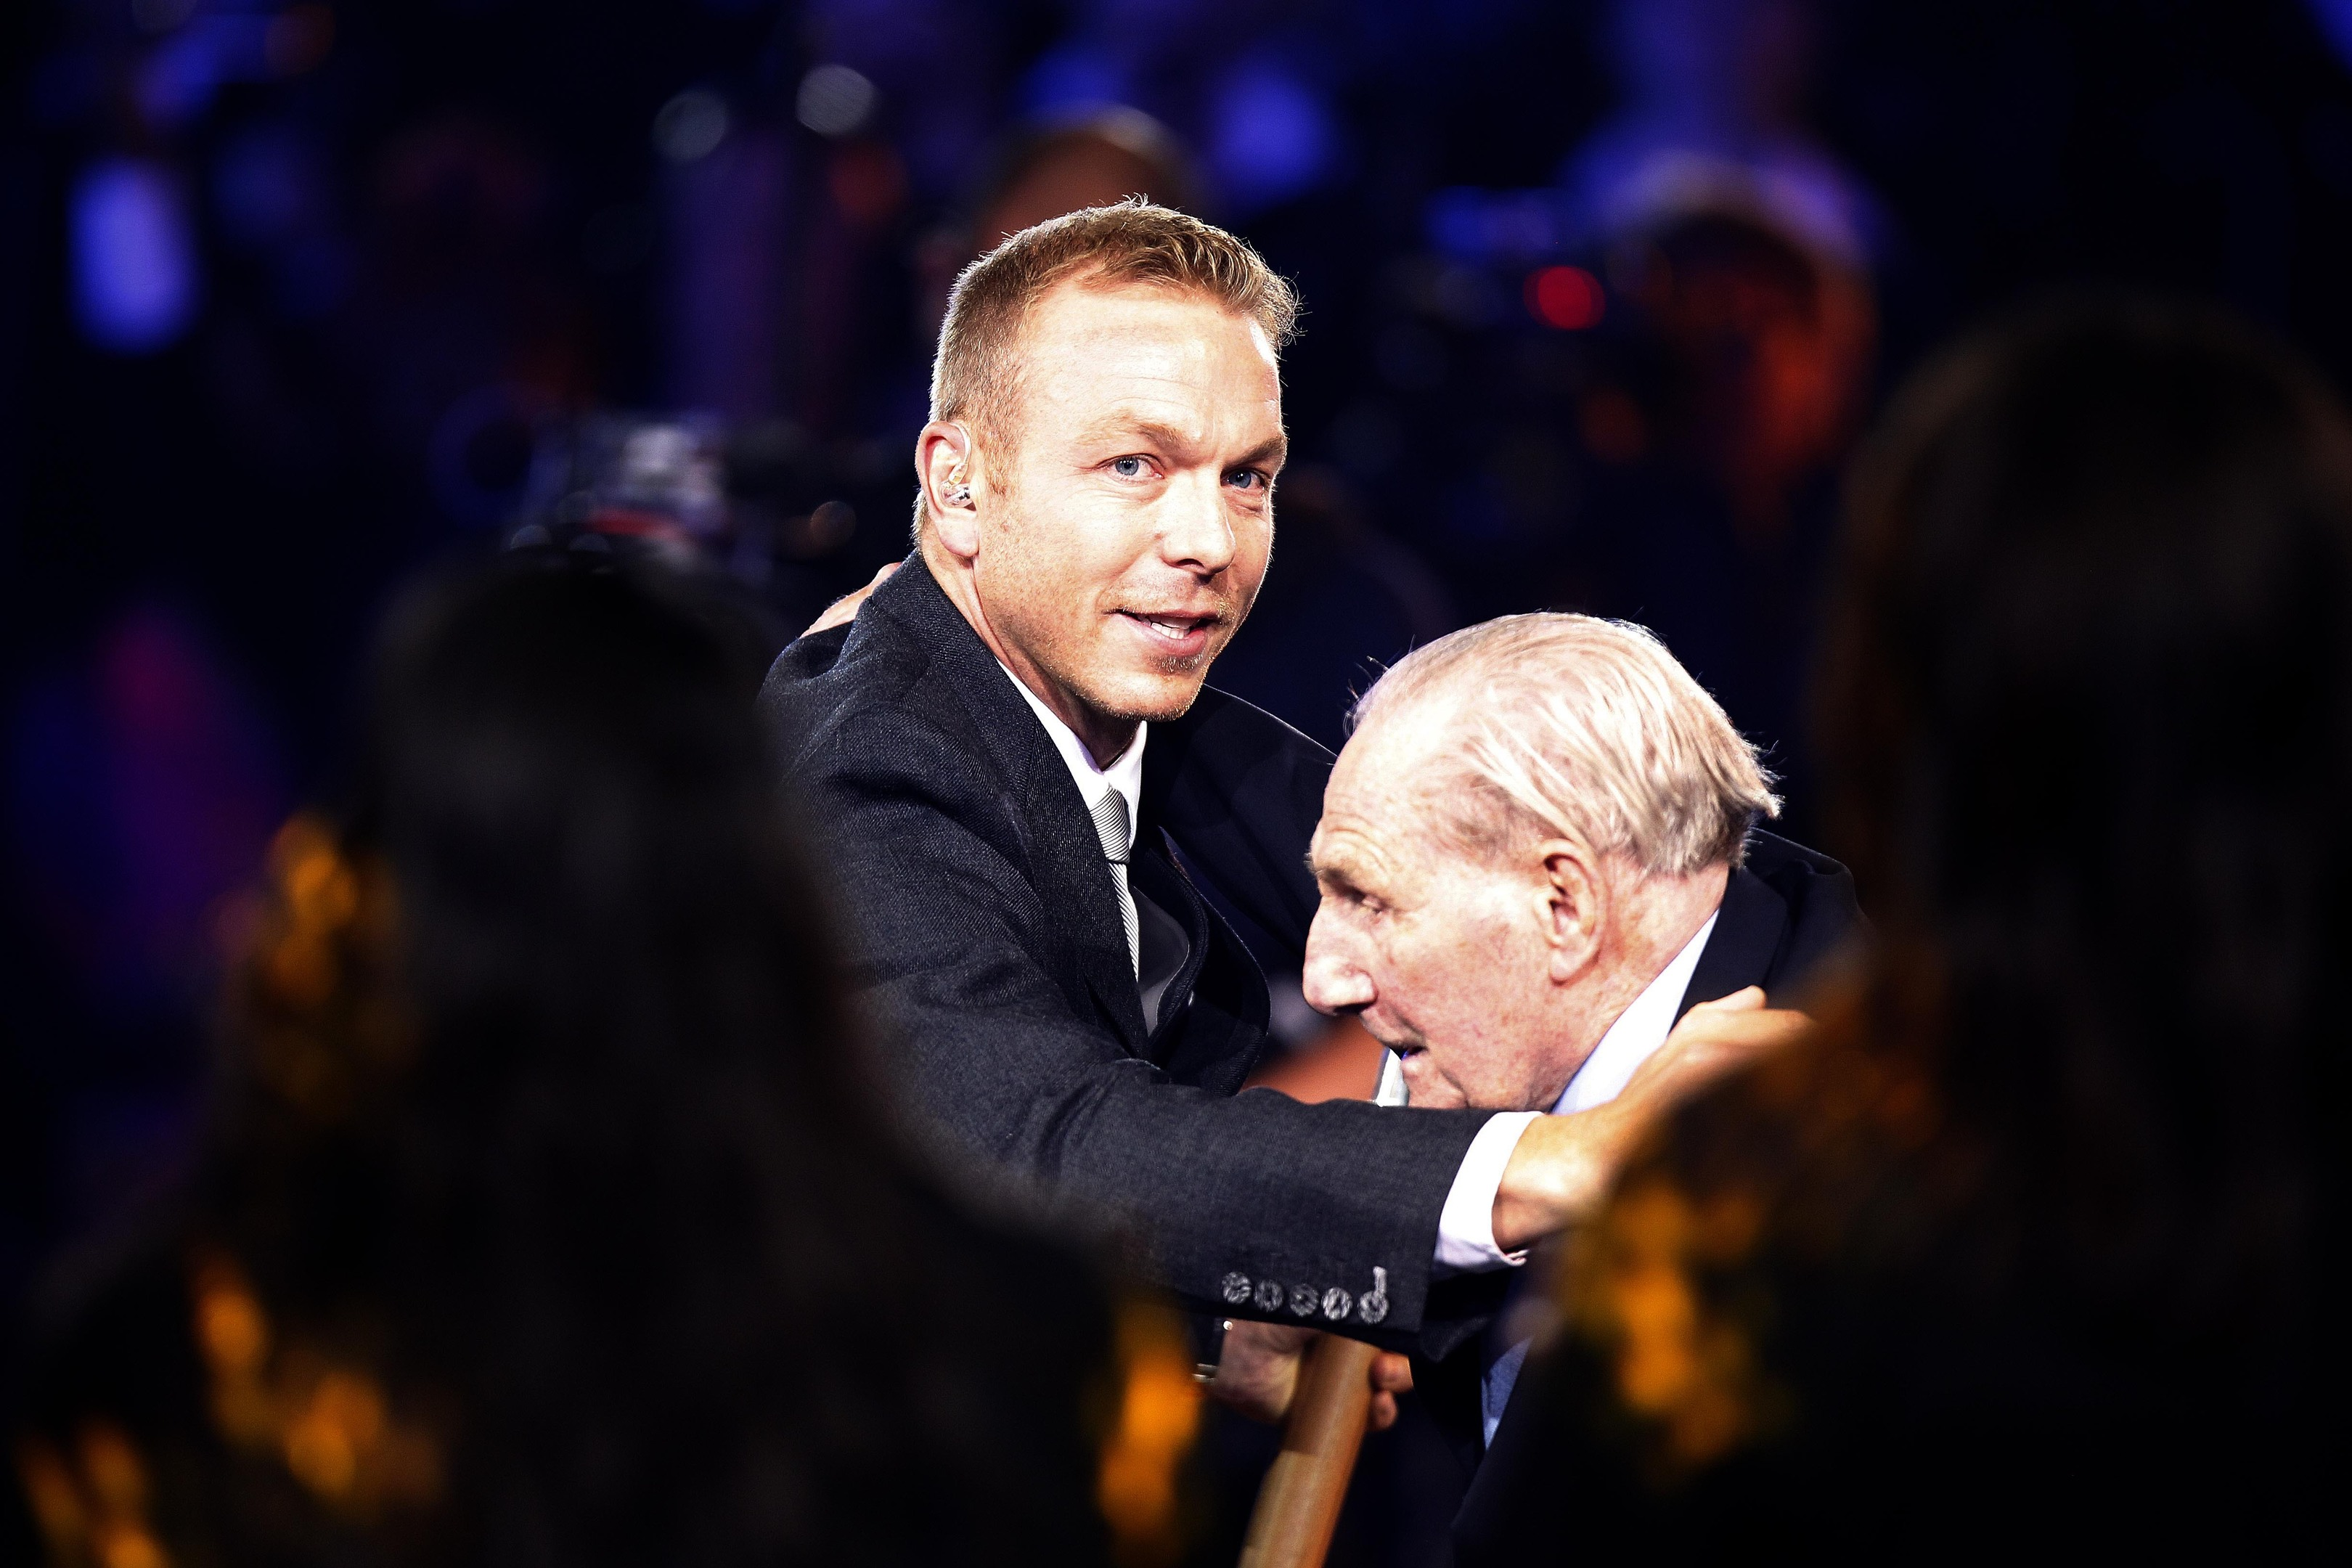 Sir Chris Hoy embracing his uncle Andy Coogan during the 2014 Commonwealth Games opening ceremony in Glasgow.